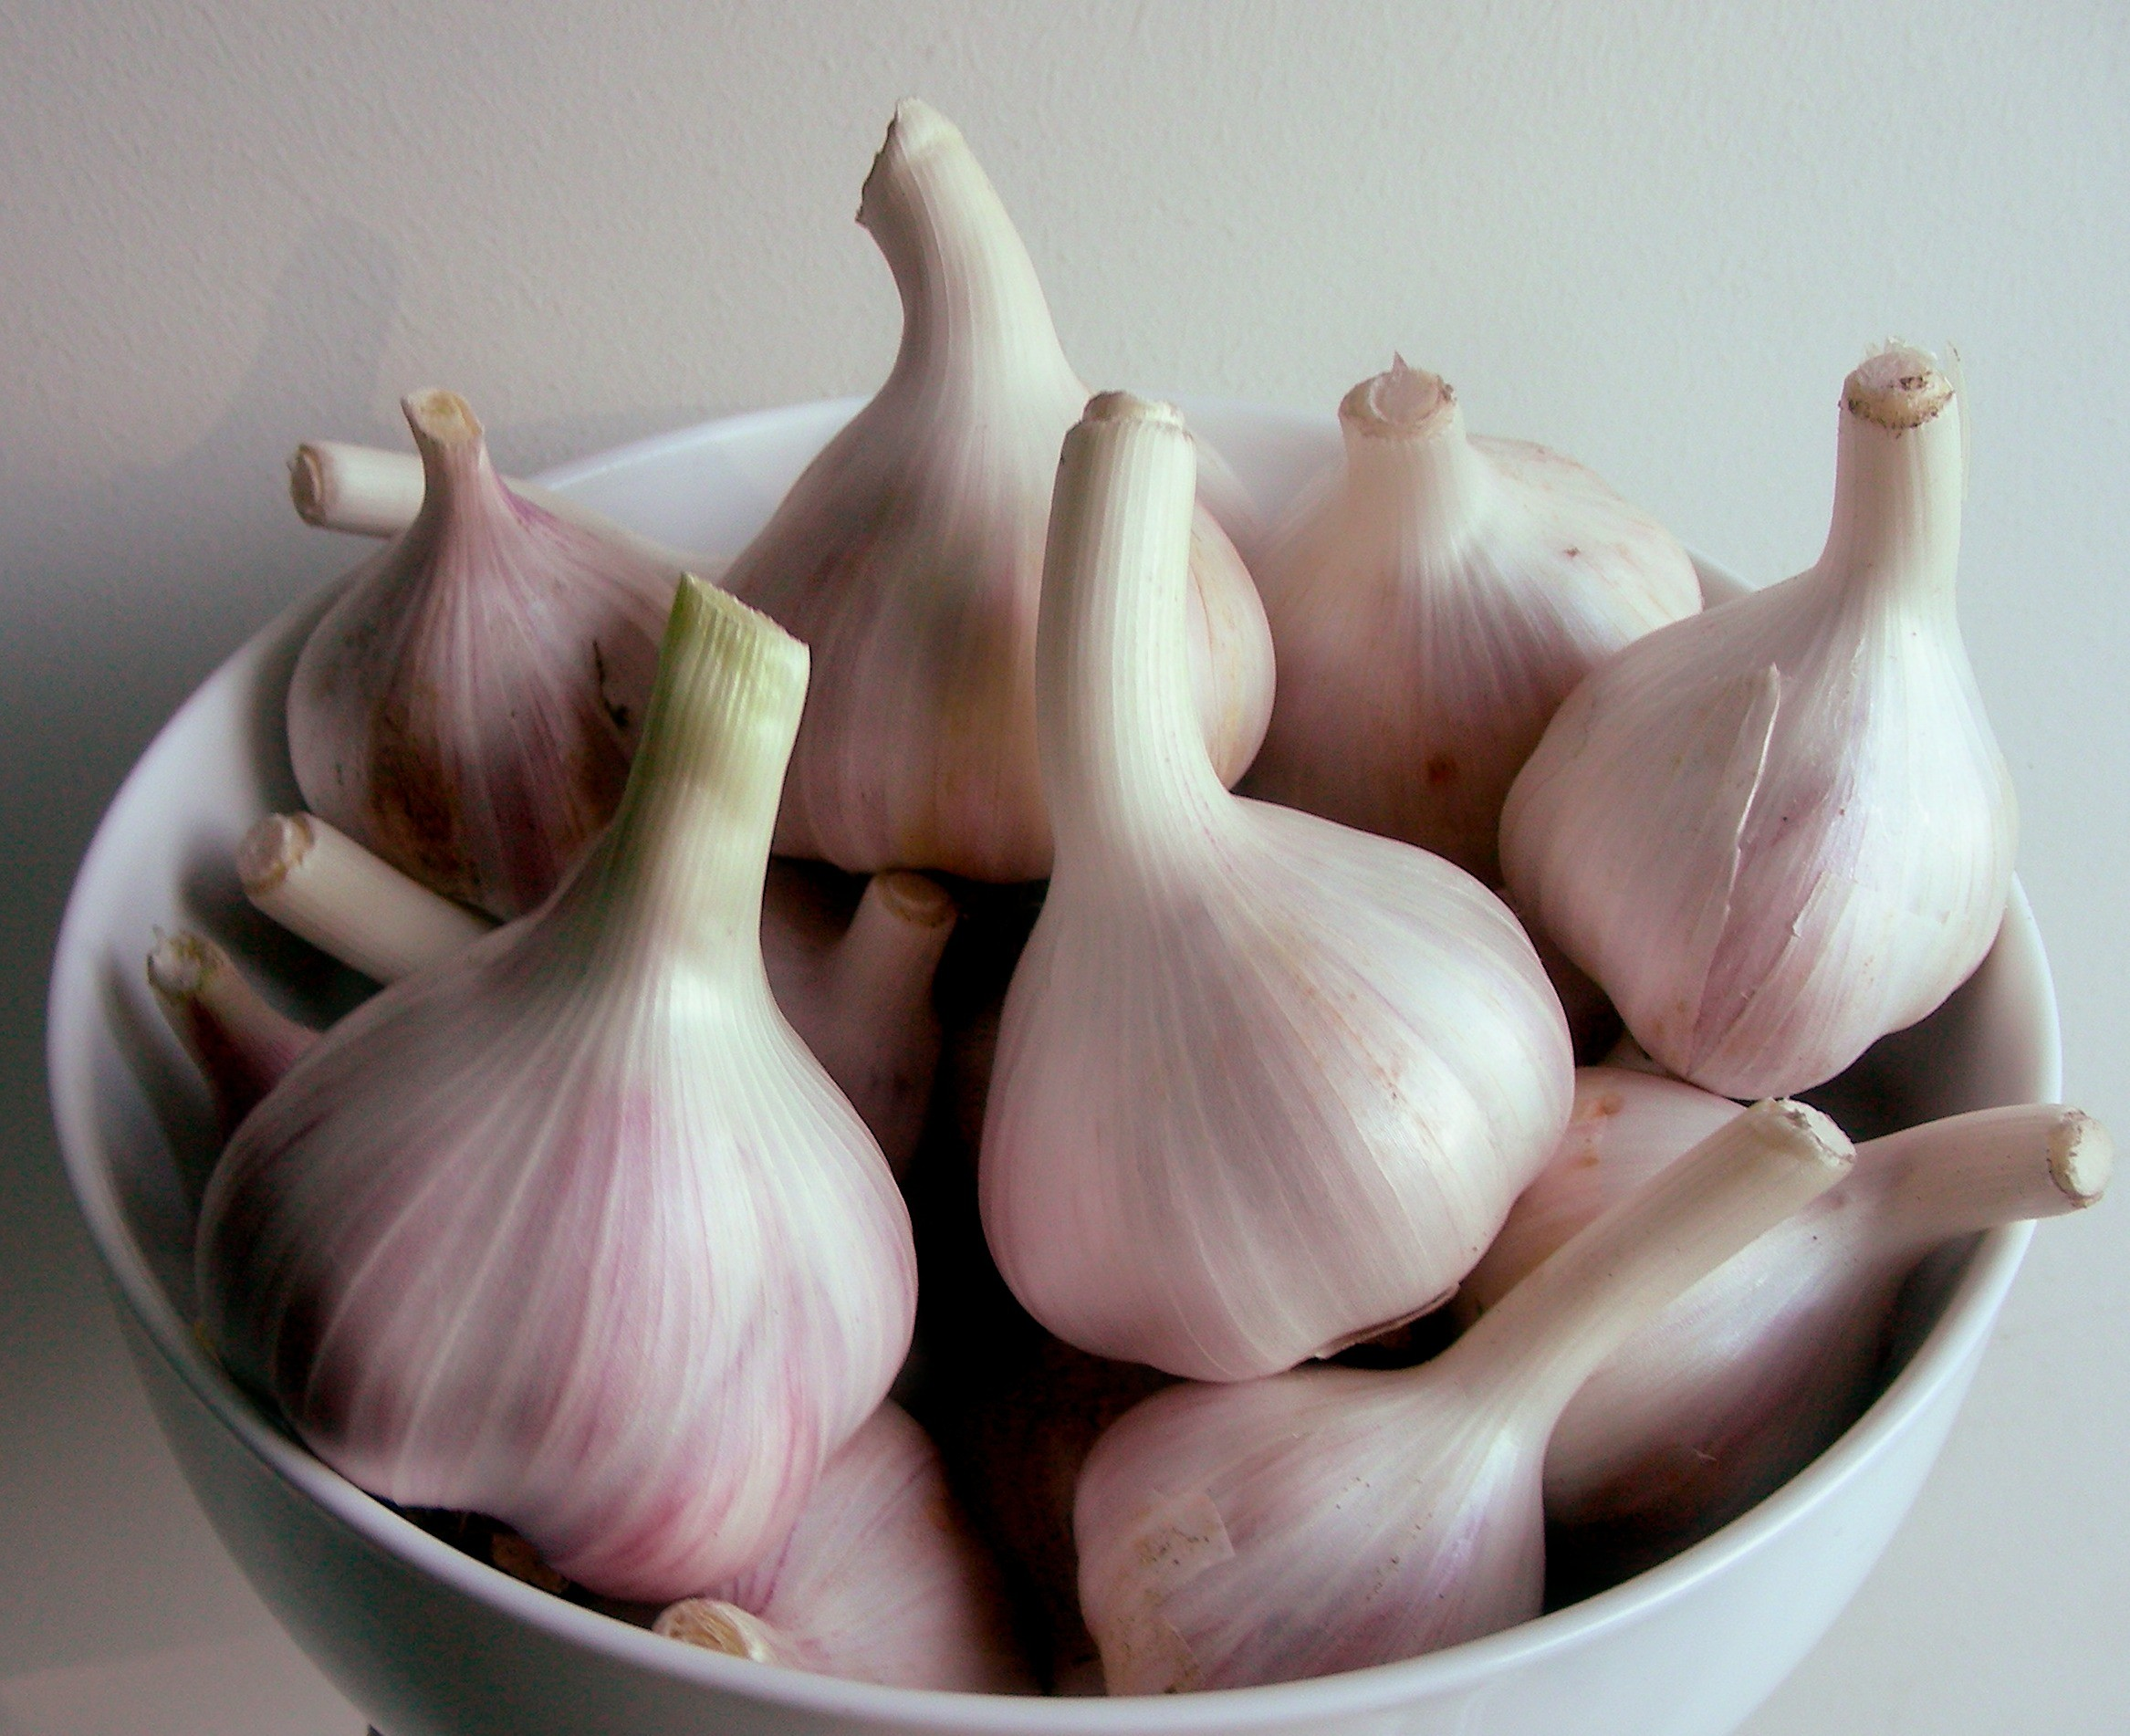 garlic - How to eliminate the smell of garlic from your breath and your hands